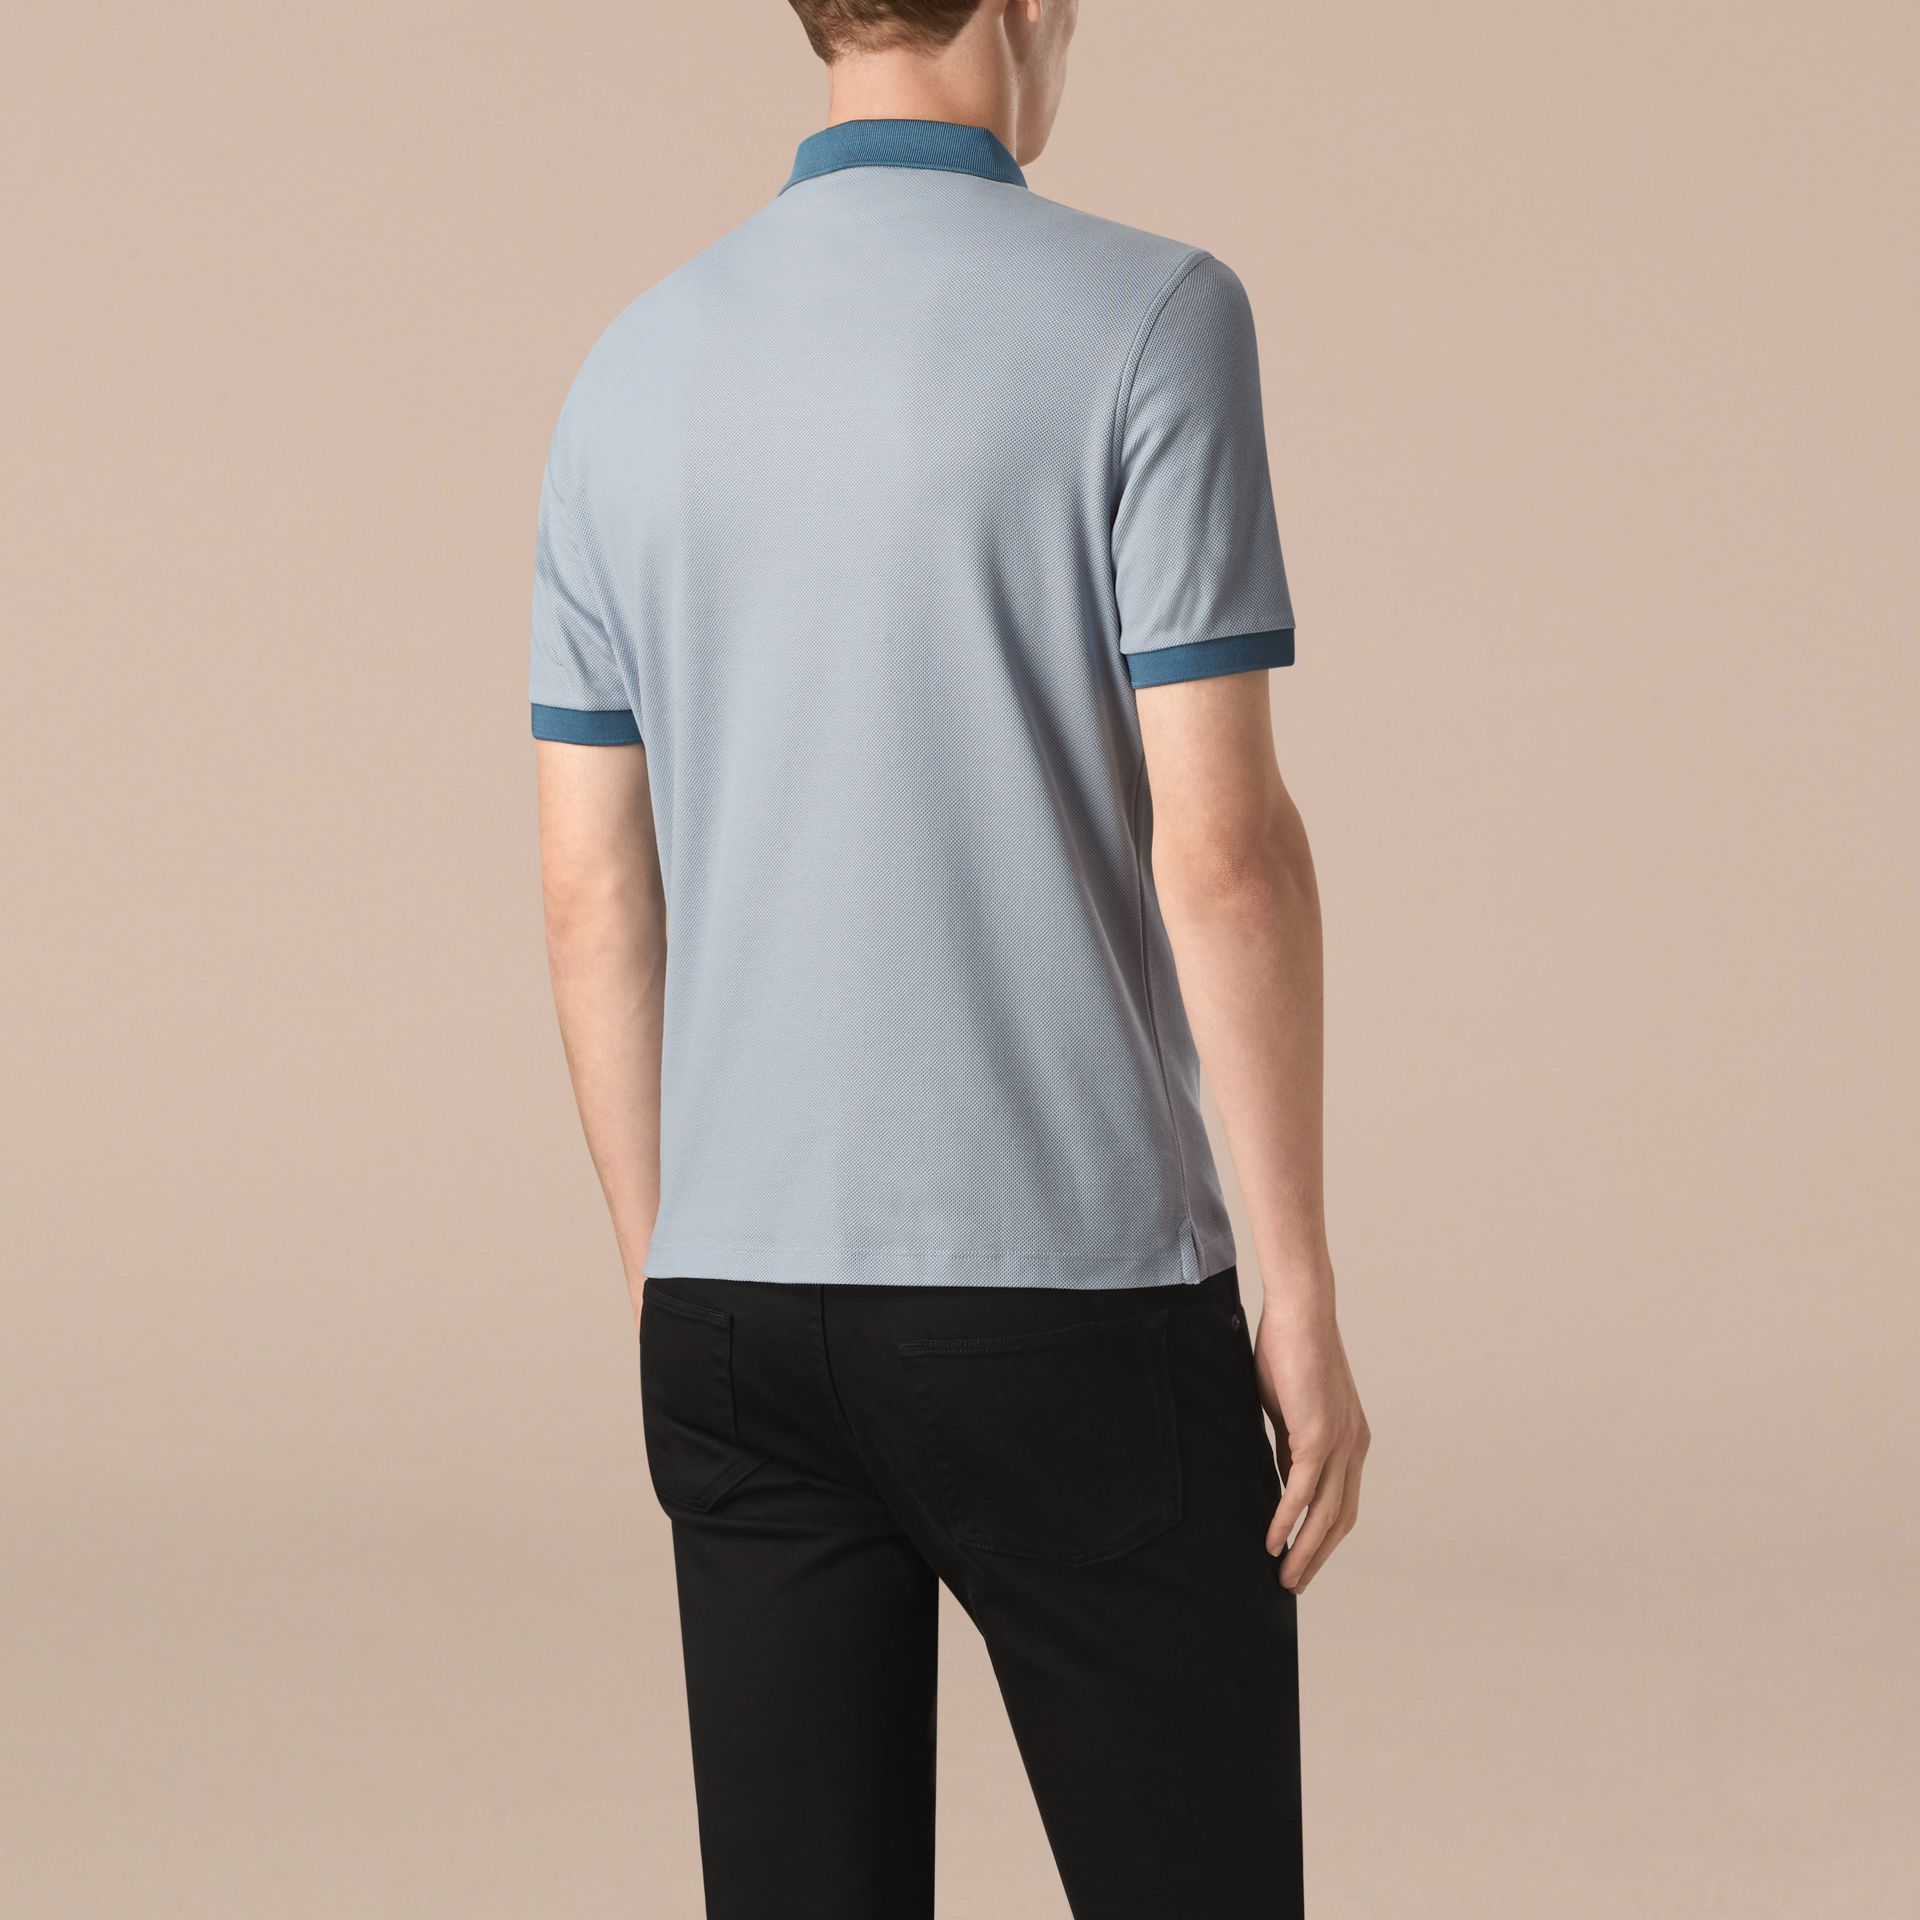 Pale sky blue/lupen blue Mercerised Cotton Piqué Polo Shirt Pale Sky Blue/lupen Blue - gallery image 2